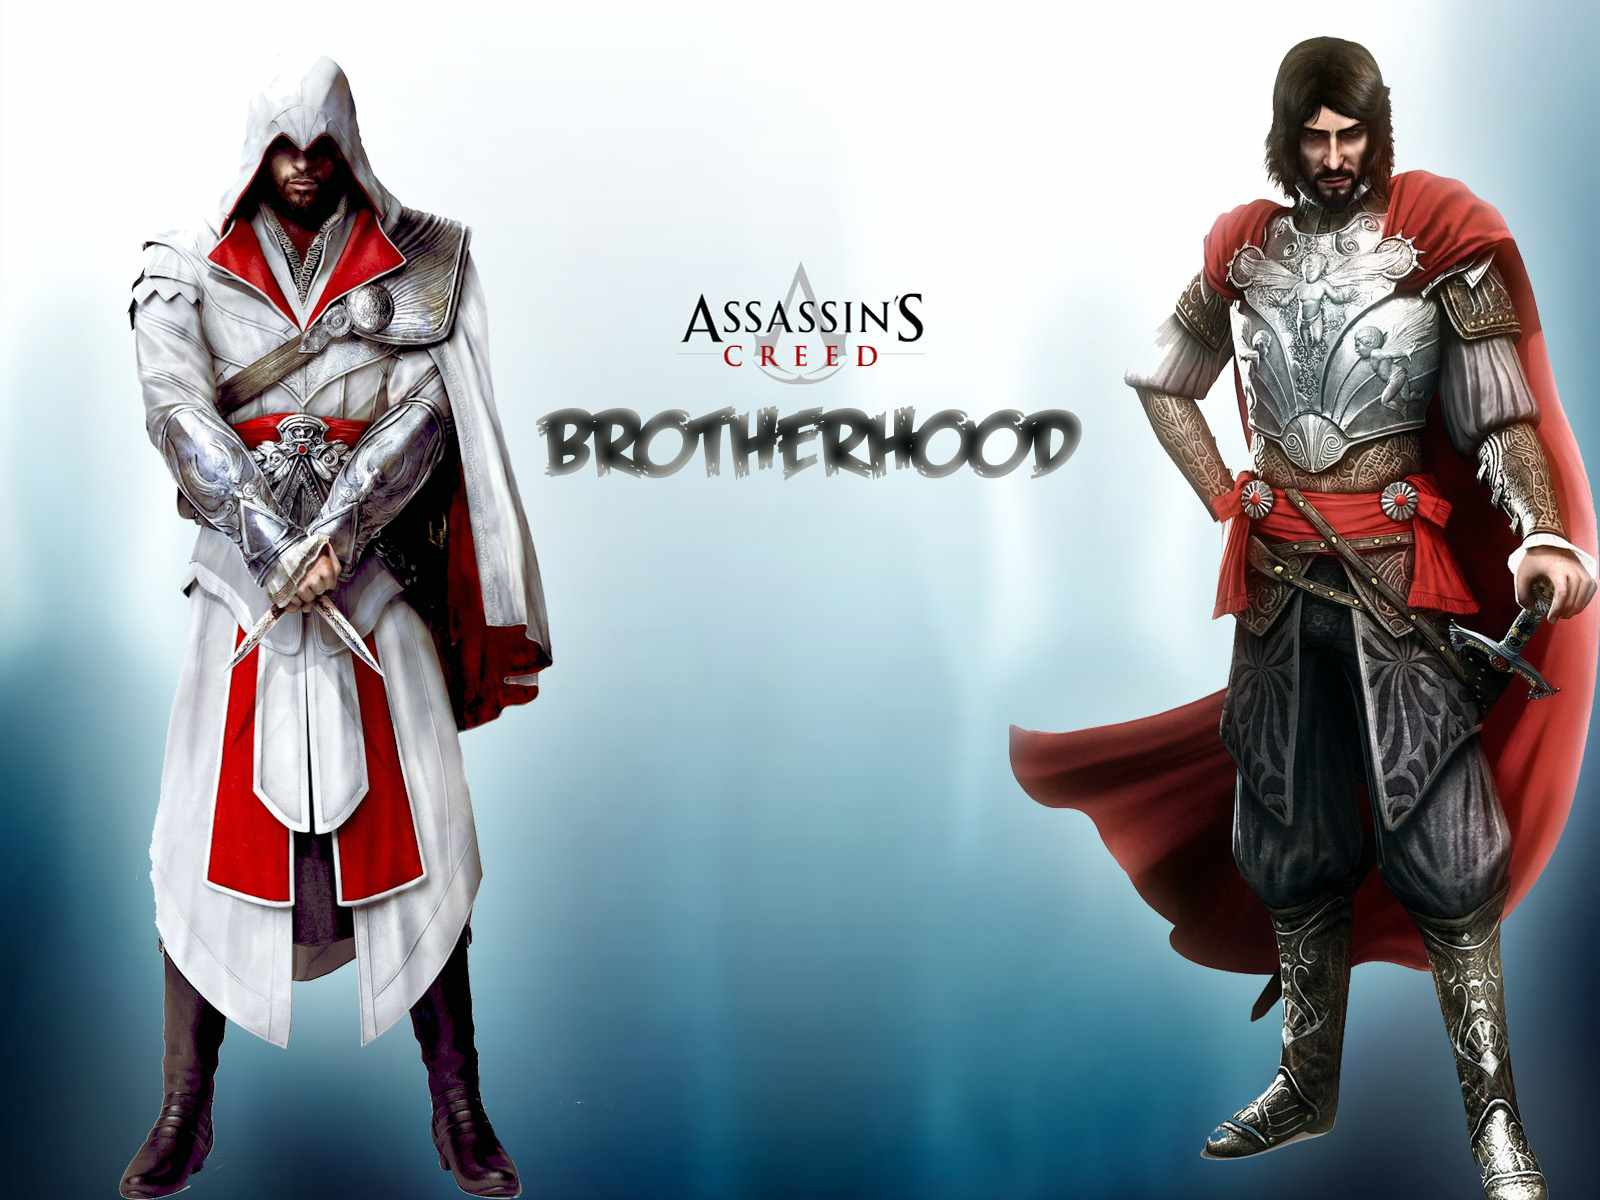 http://1.bp.blogspot.com/_sX3tCcZFGFE/TSax46KFBiI/AAAAAAAAARo/7BqOo-Cfj10/s1600/Assassin__s_Creed_Brotherhood_by_Gogeta126.jpg